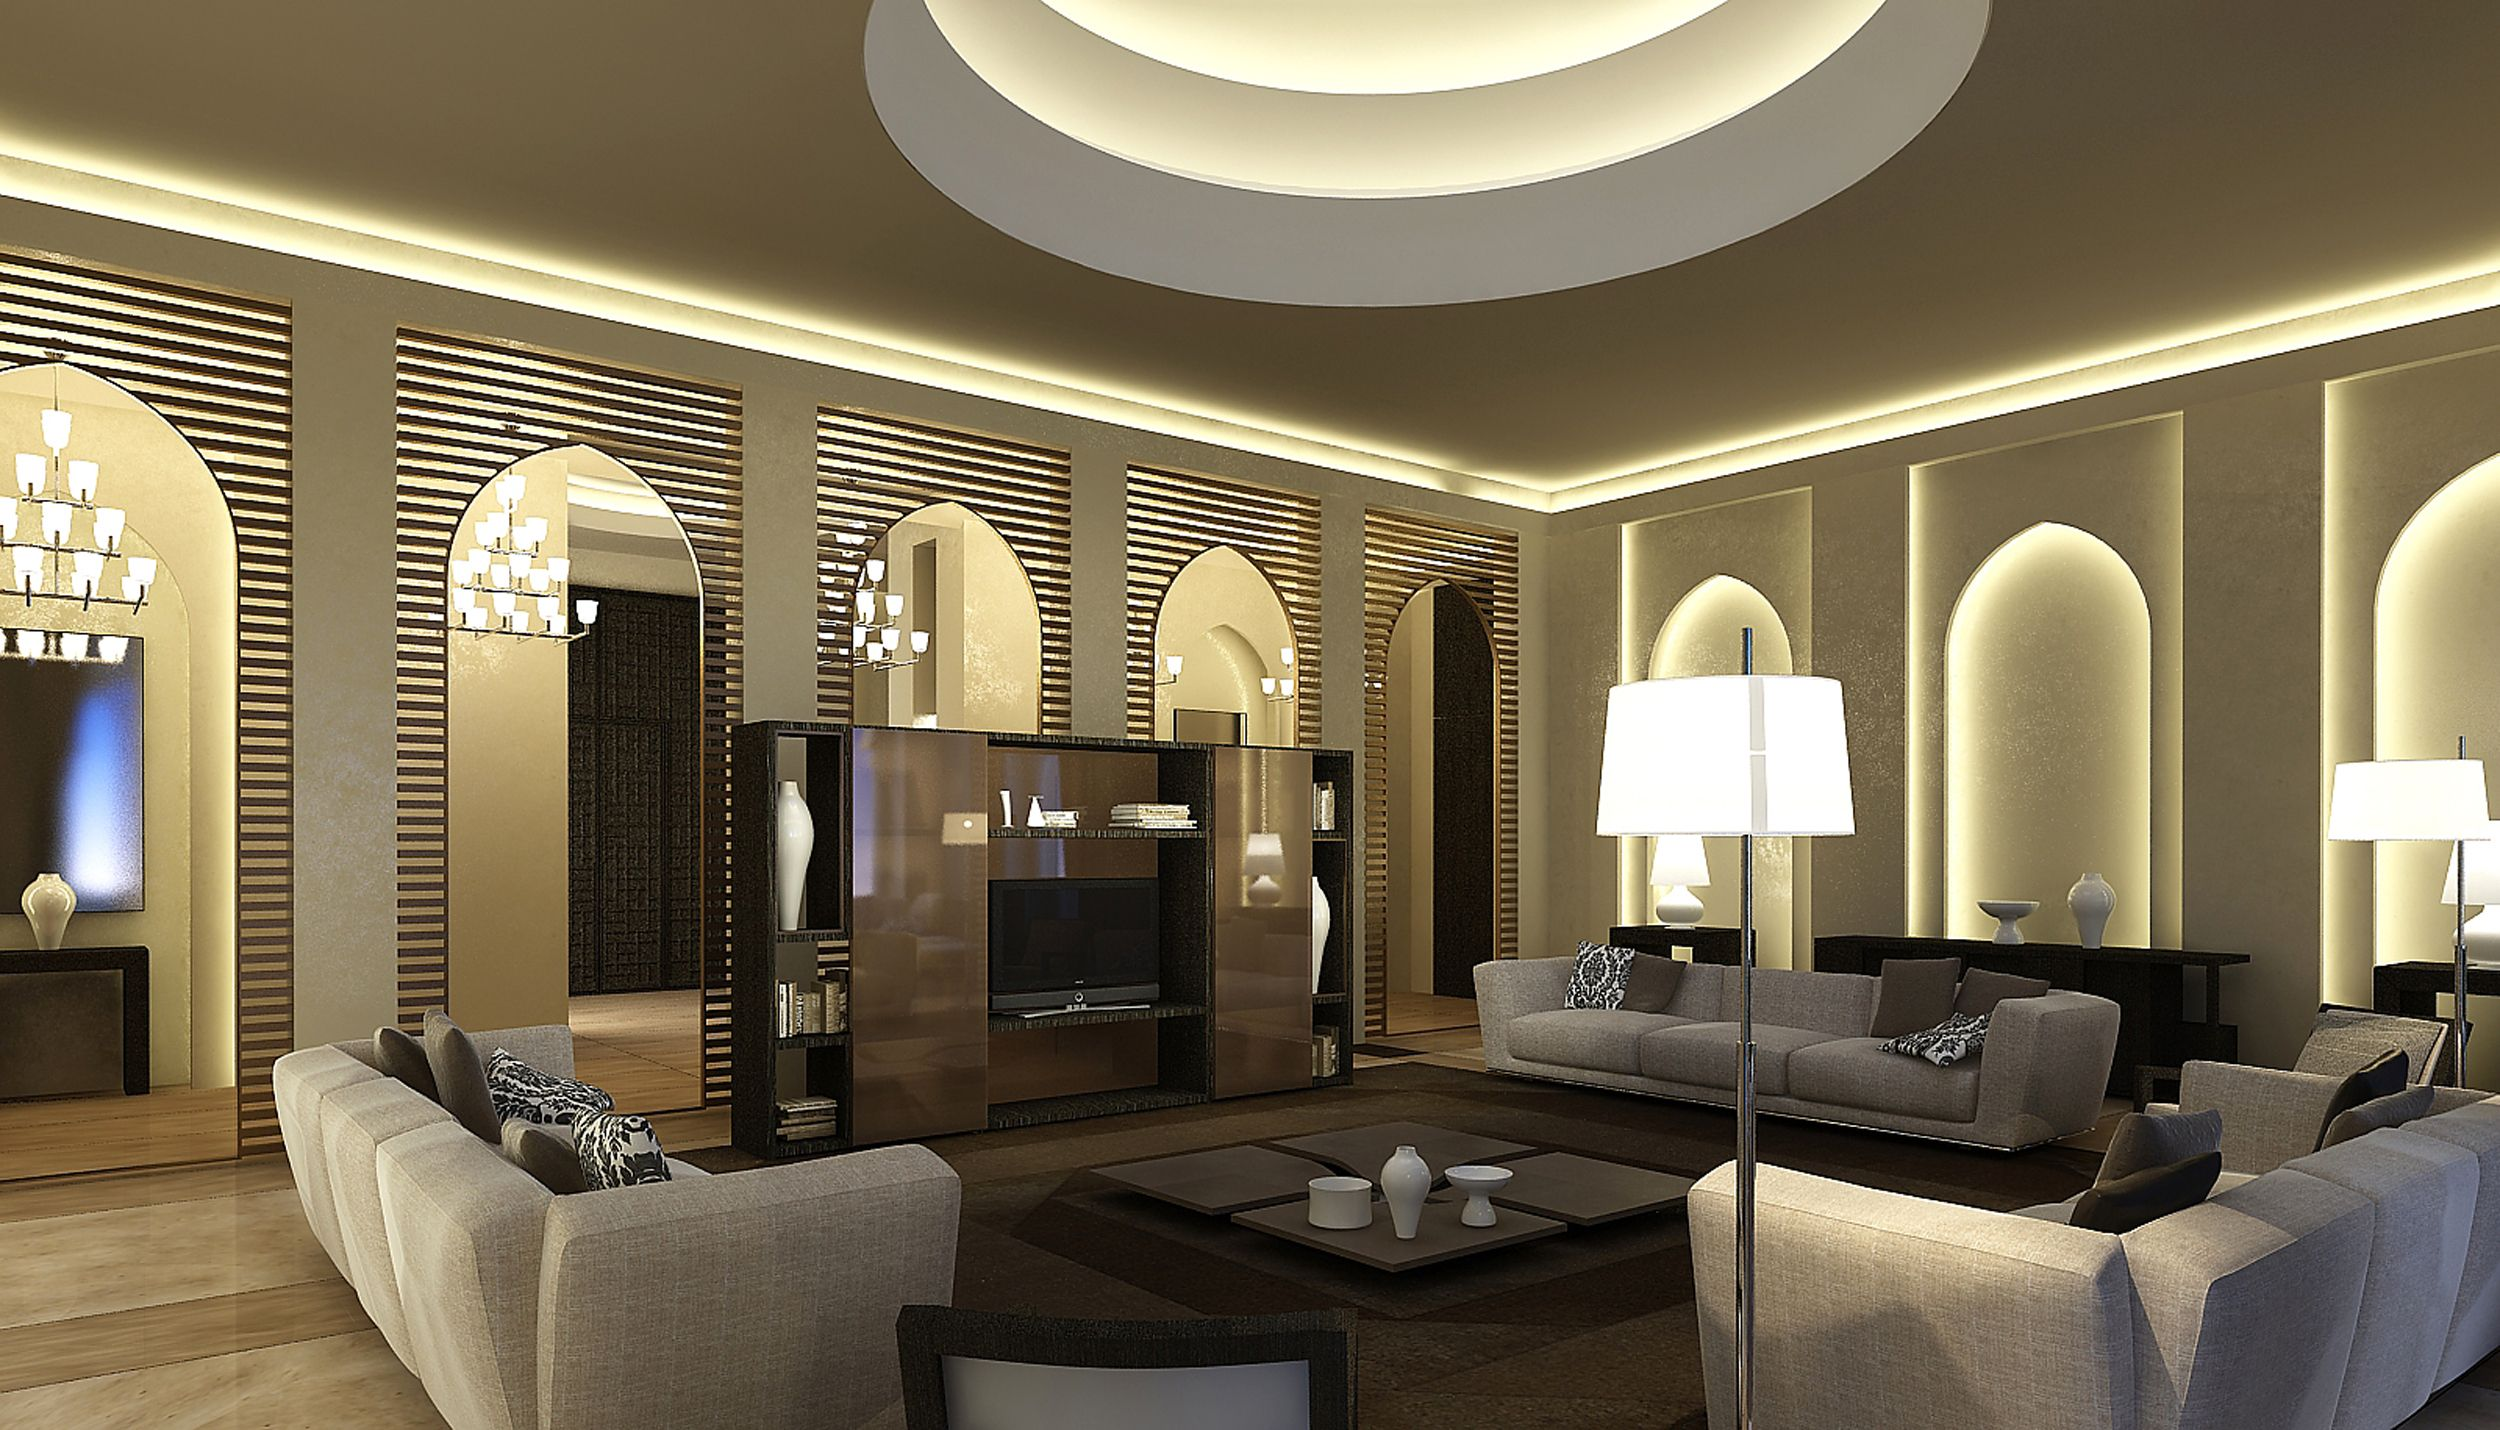 International interior design private villa abdul aziz al for Duta villa interior design